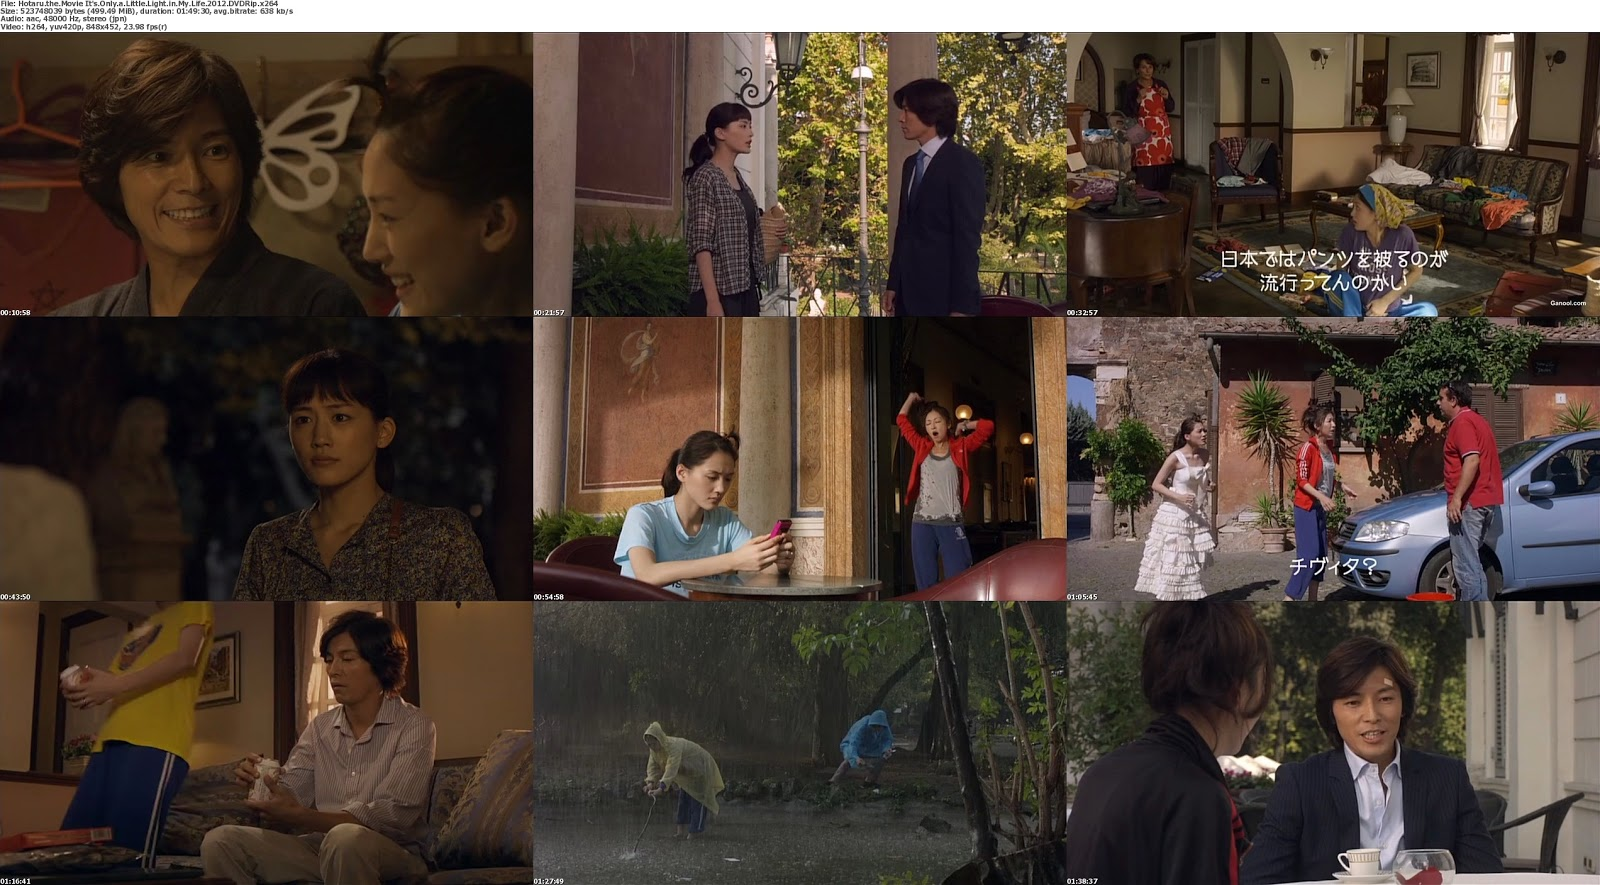 Hotaru+the+Movie+It%E2%80%99s+Only+a+Little+Light+in+My+Life+(2012)+DVDRip+500MB+hnmovies